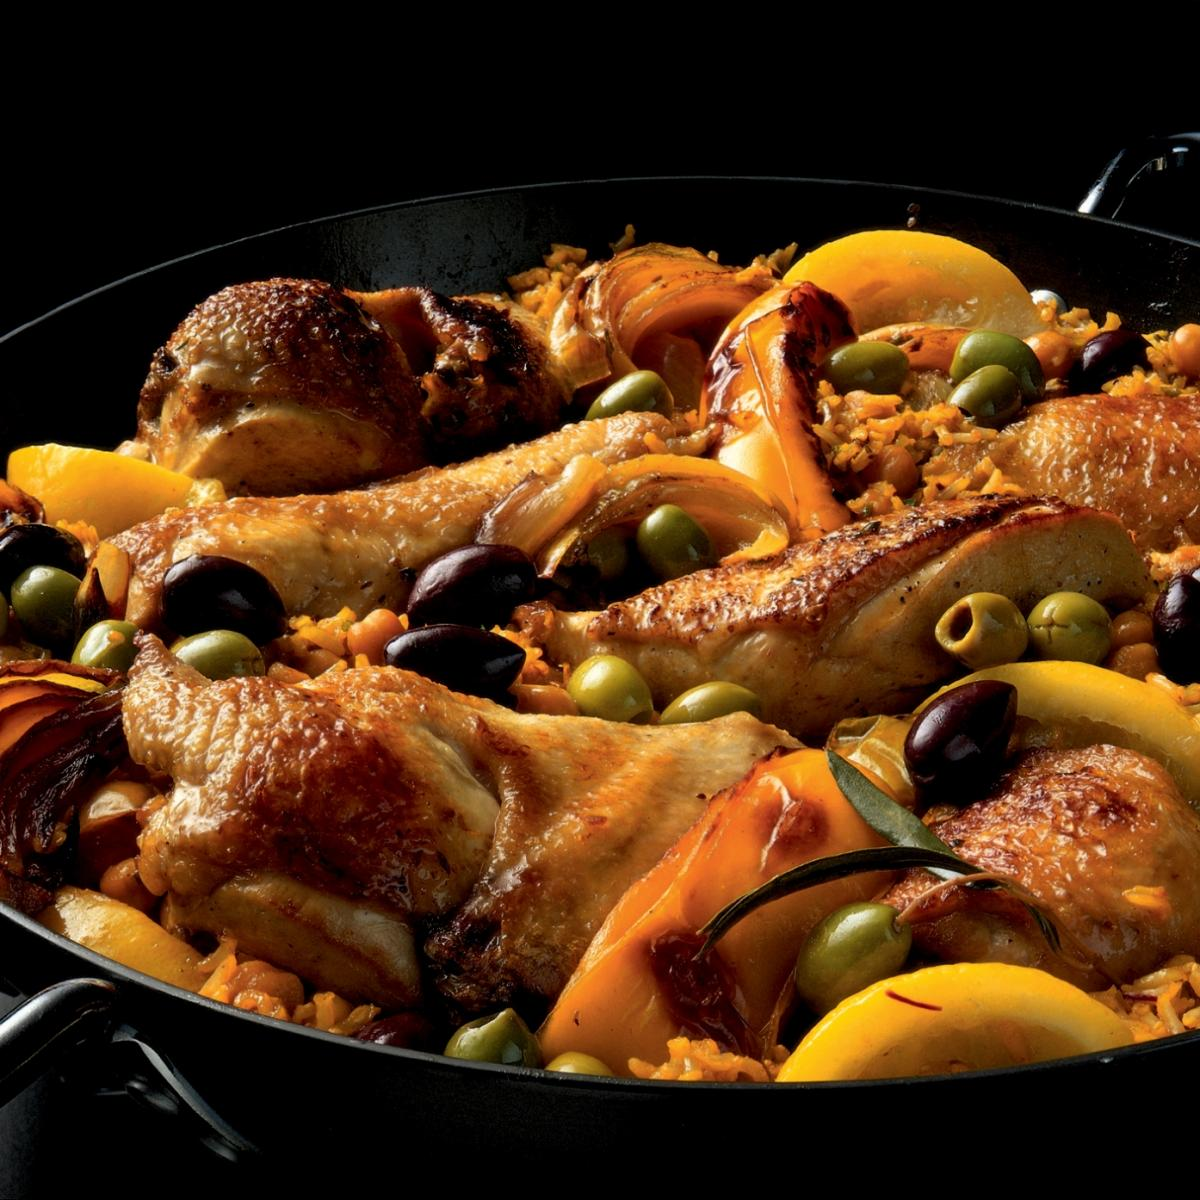 A picture of Delia's Moroccan Baked Chicken with Chickpeas and Rice recipe